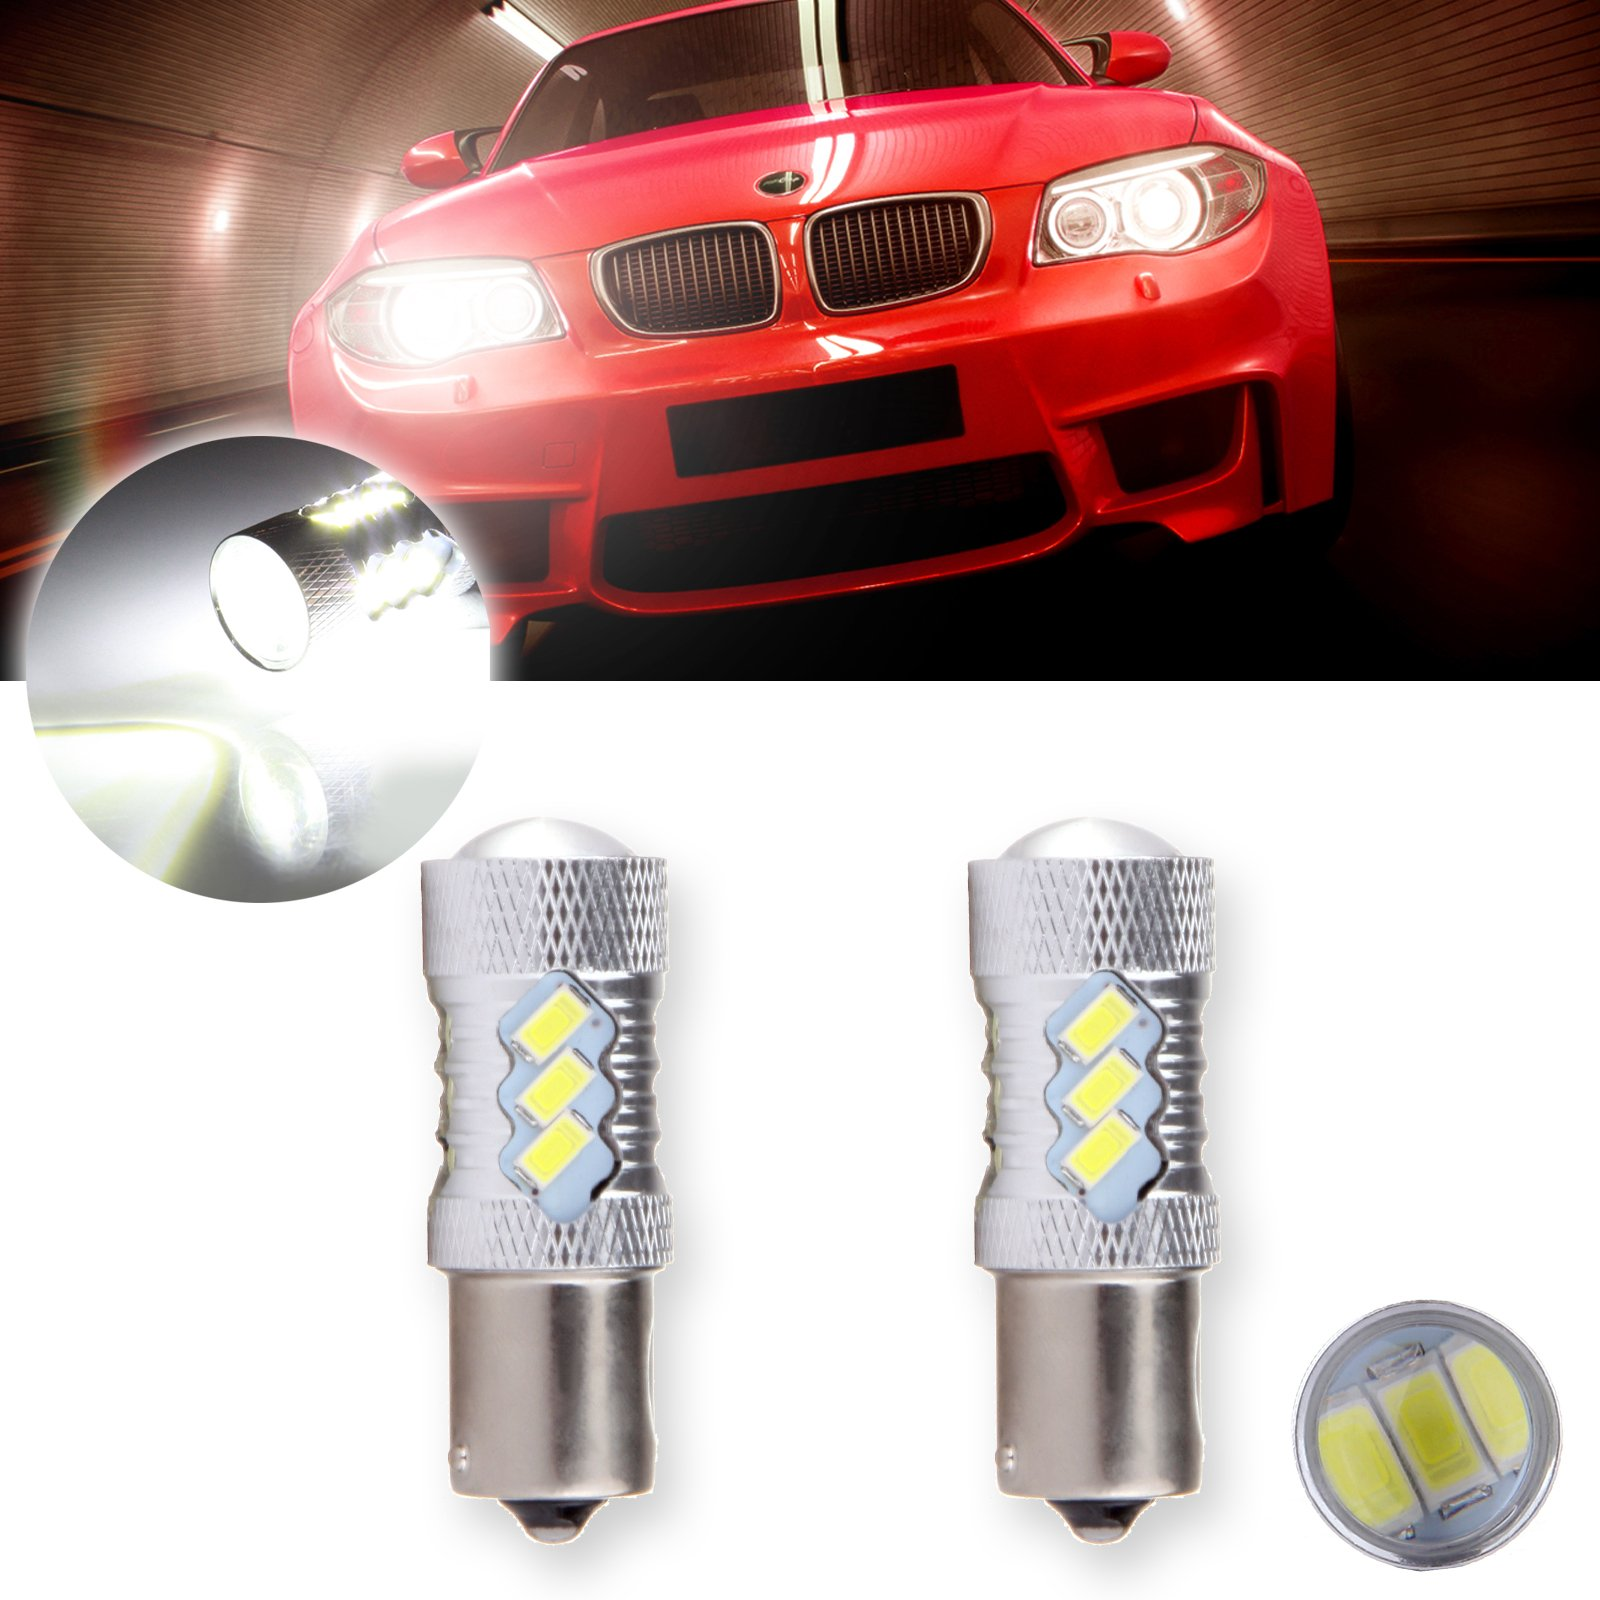 CCIYU 2 Pack Xenon White 6000K 60W 6000K Cree 1156 BA15S LED 15 5730 SMD Reverse Backup Light Bulb